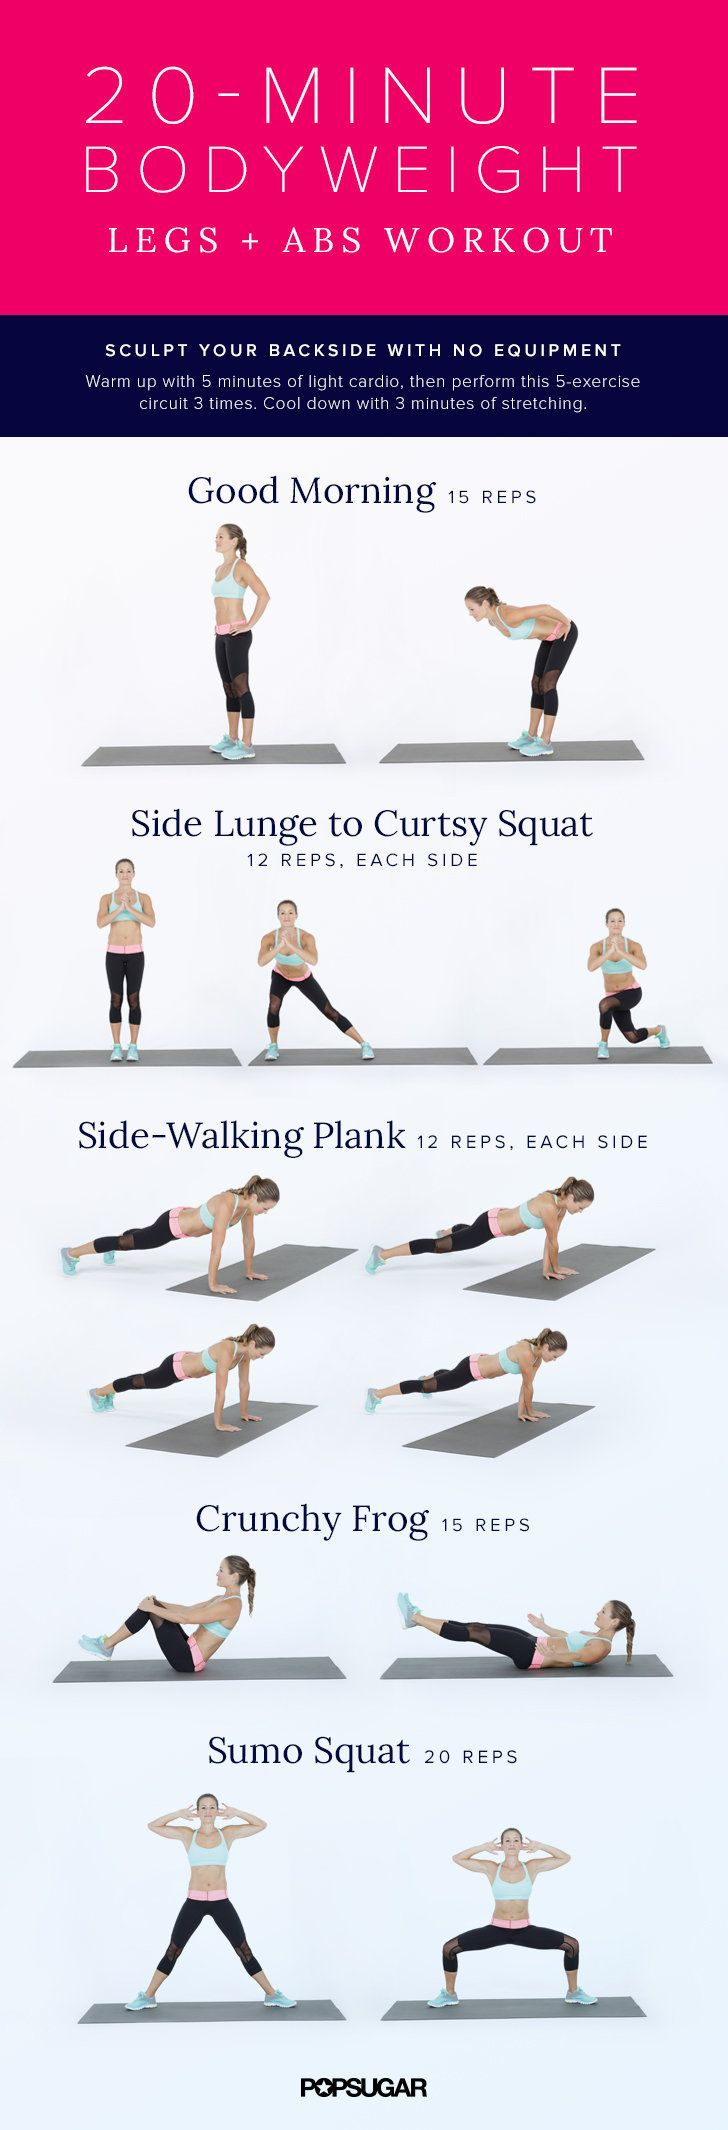 Bodyweight Workout For Legs and Abs | POPSUGAR Fitness